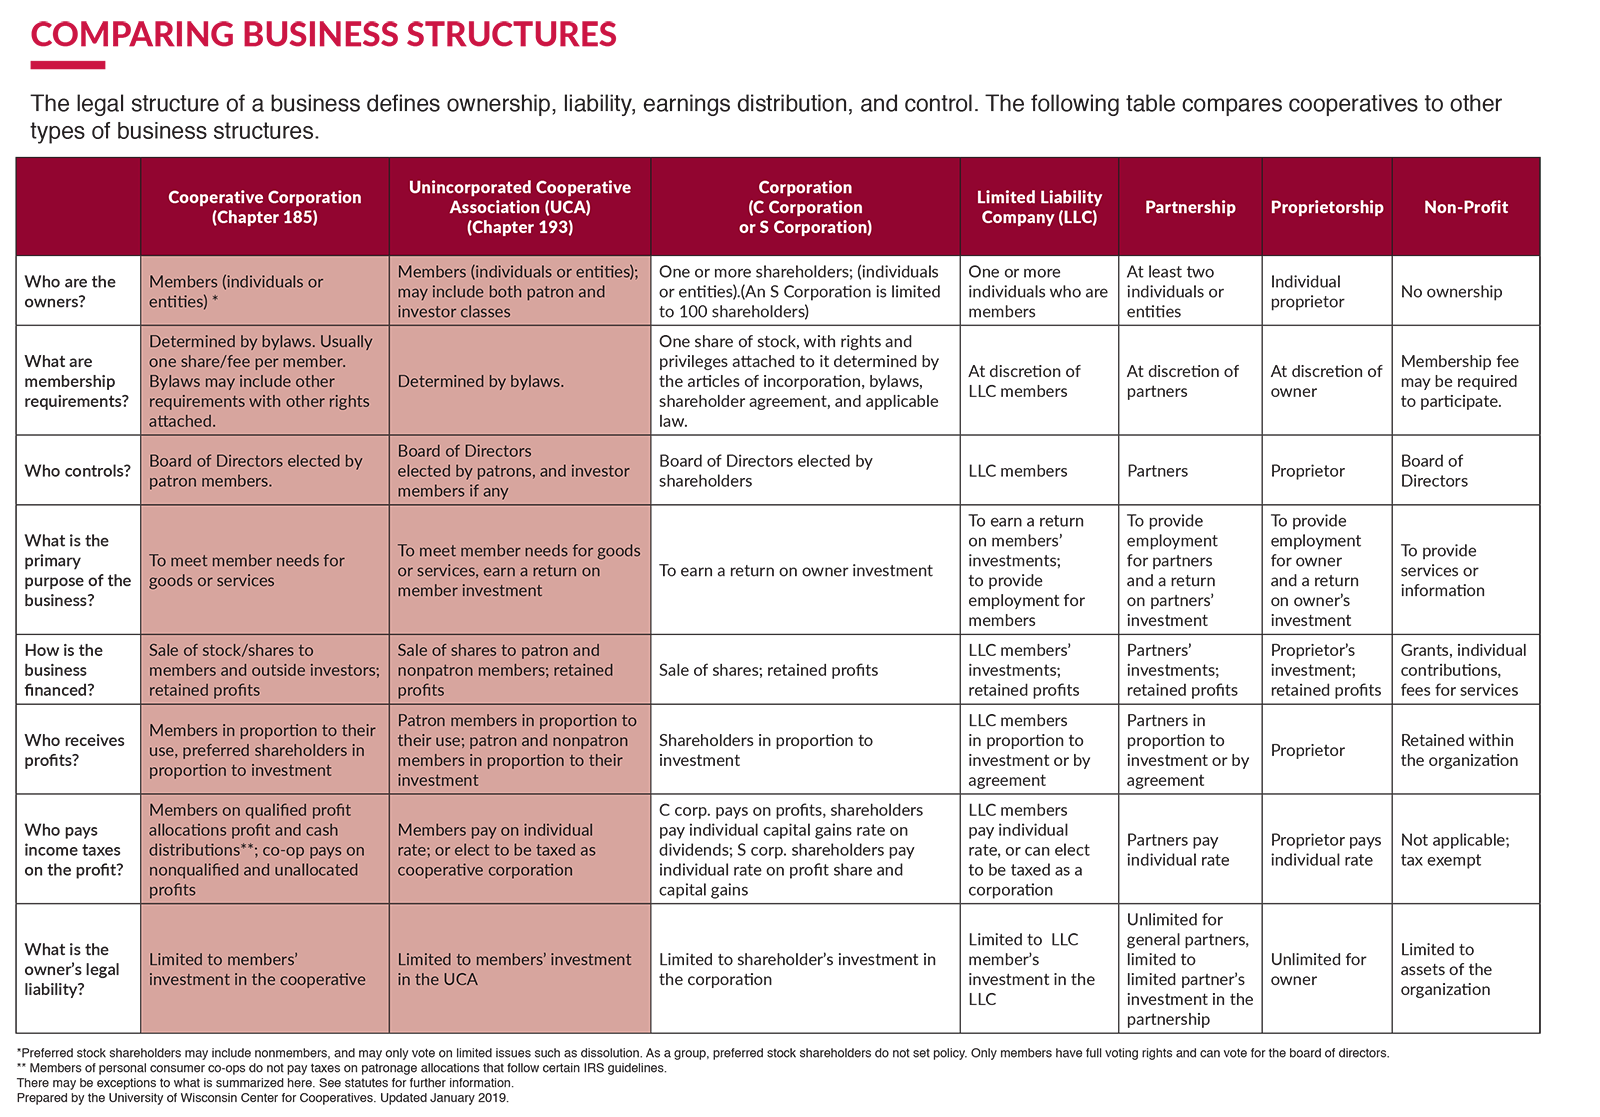 Comparison of business structures